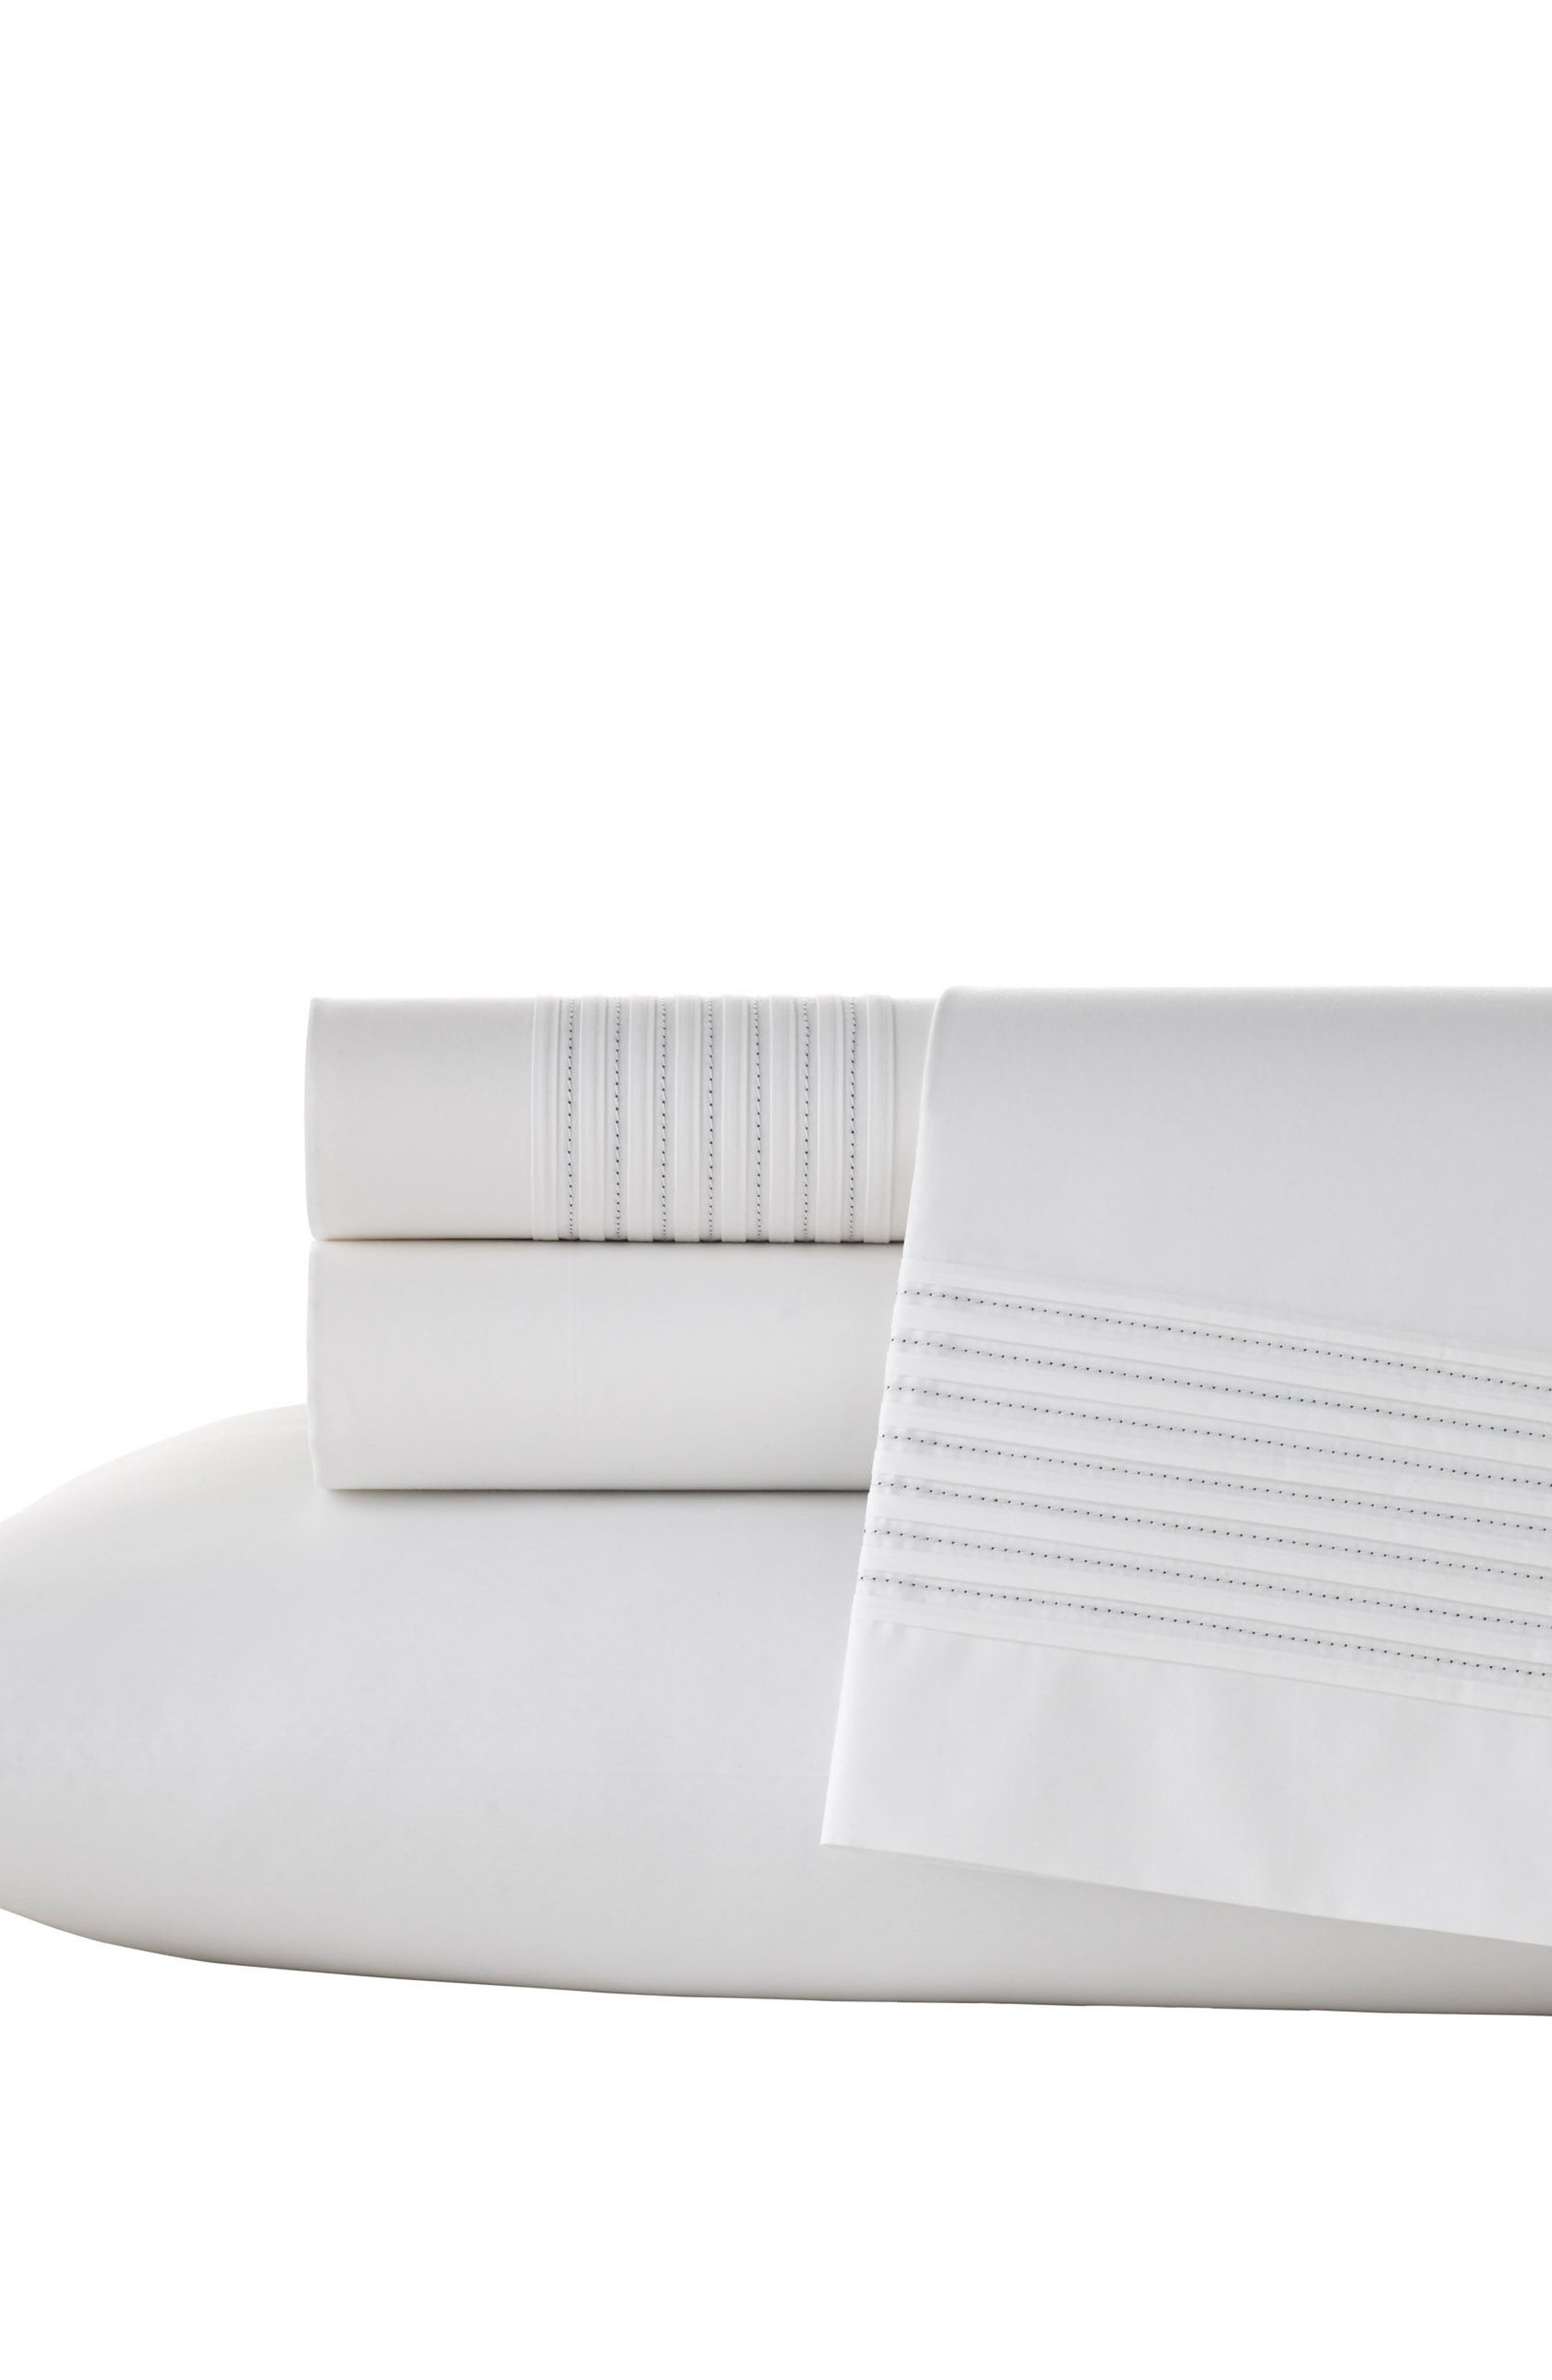 Mirrored Square 400 Thread Count Flat Sheet,                             Main thumbnail 1, color,                             White